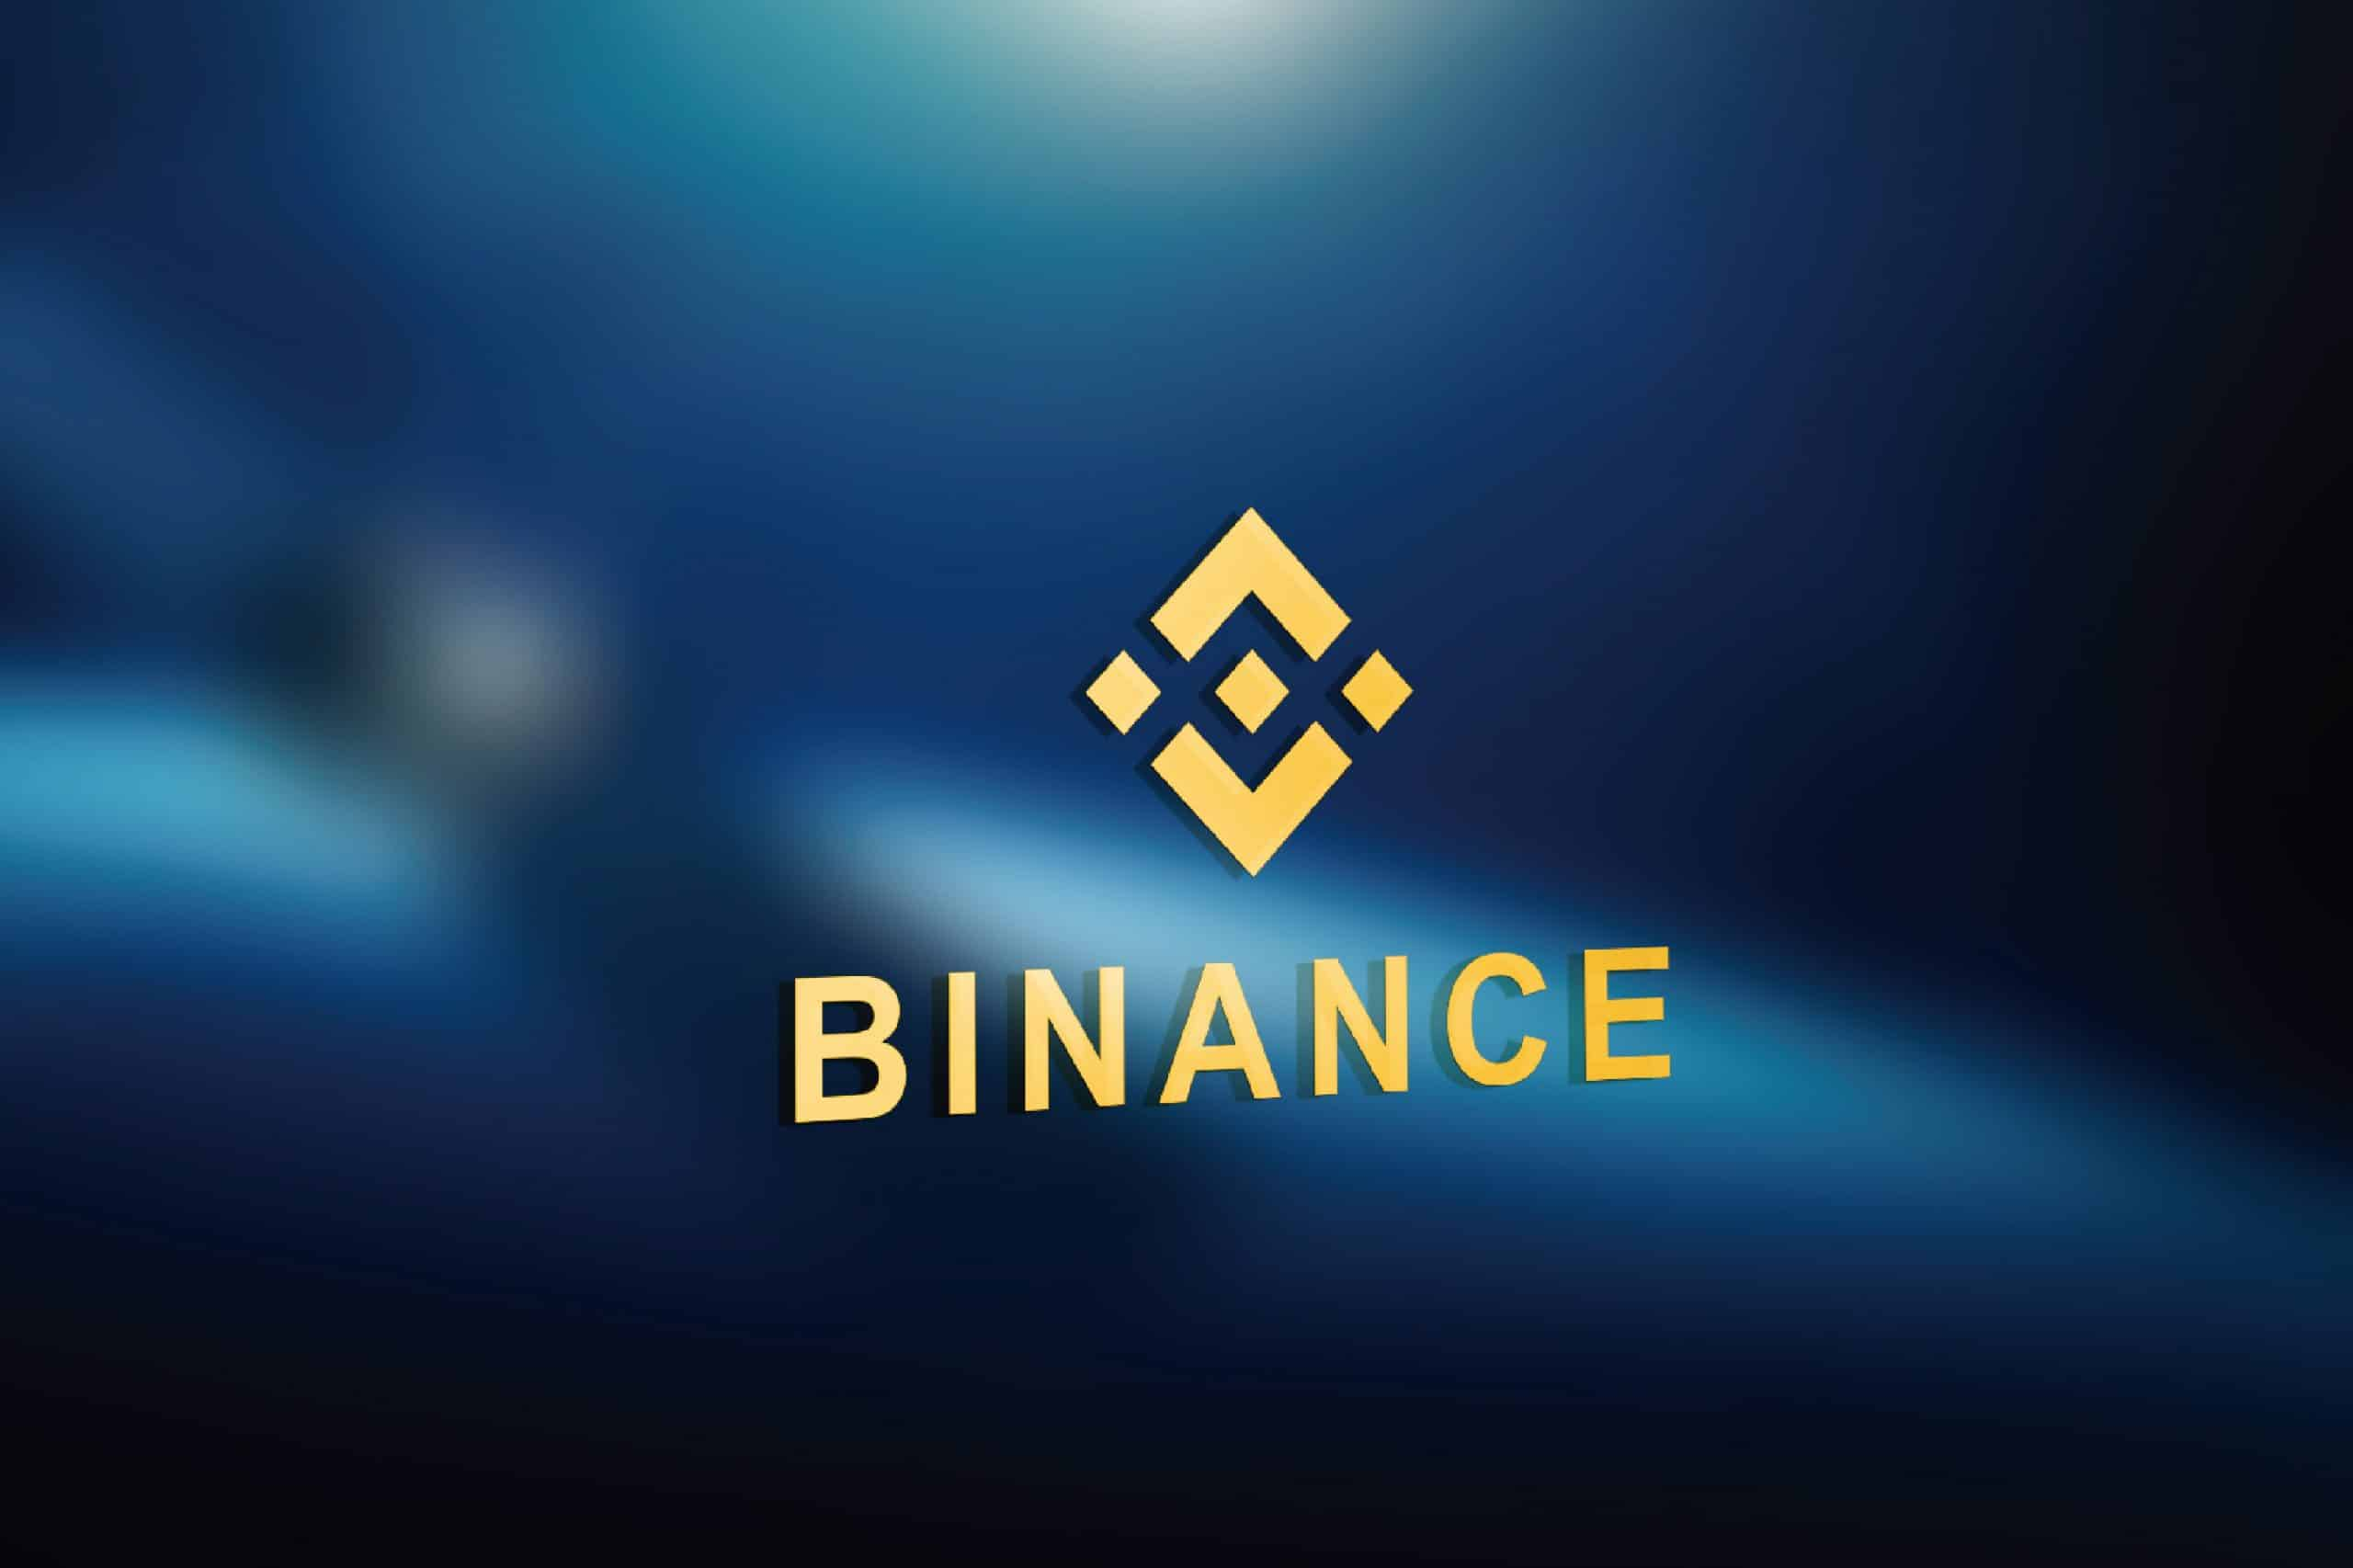 binance bitcoin sv craig wright